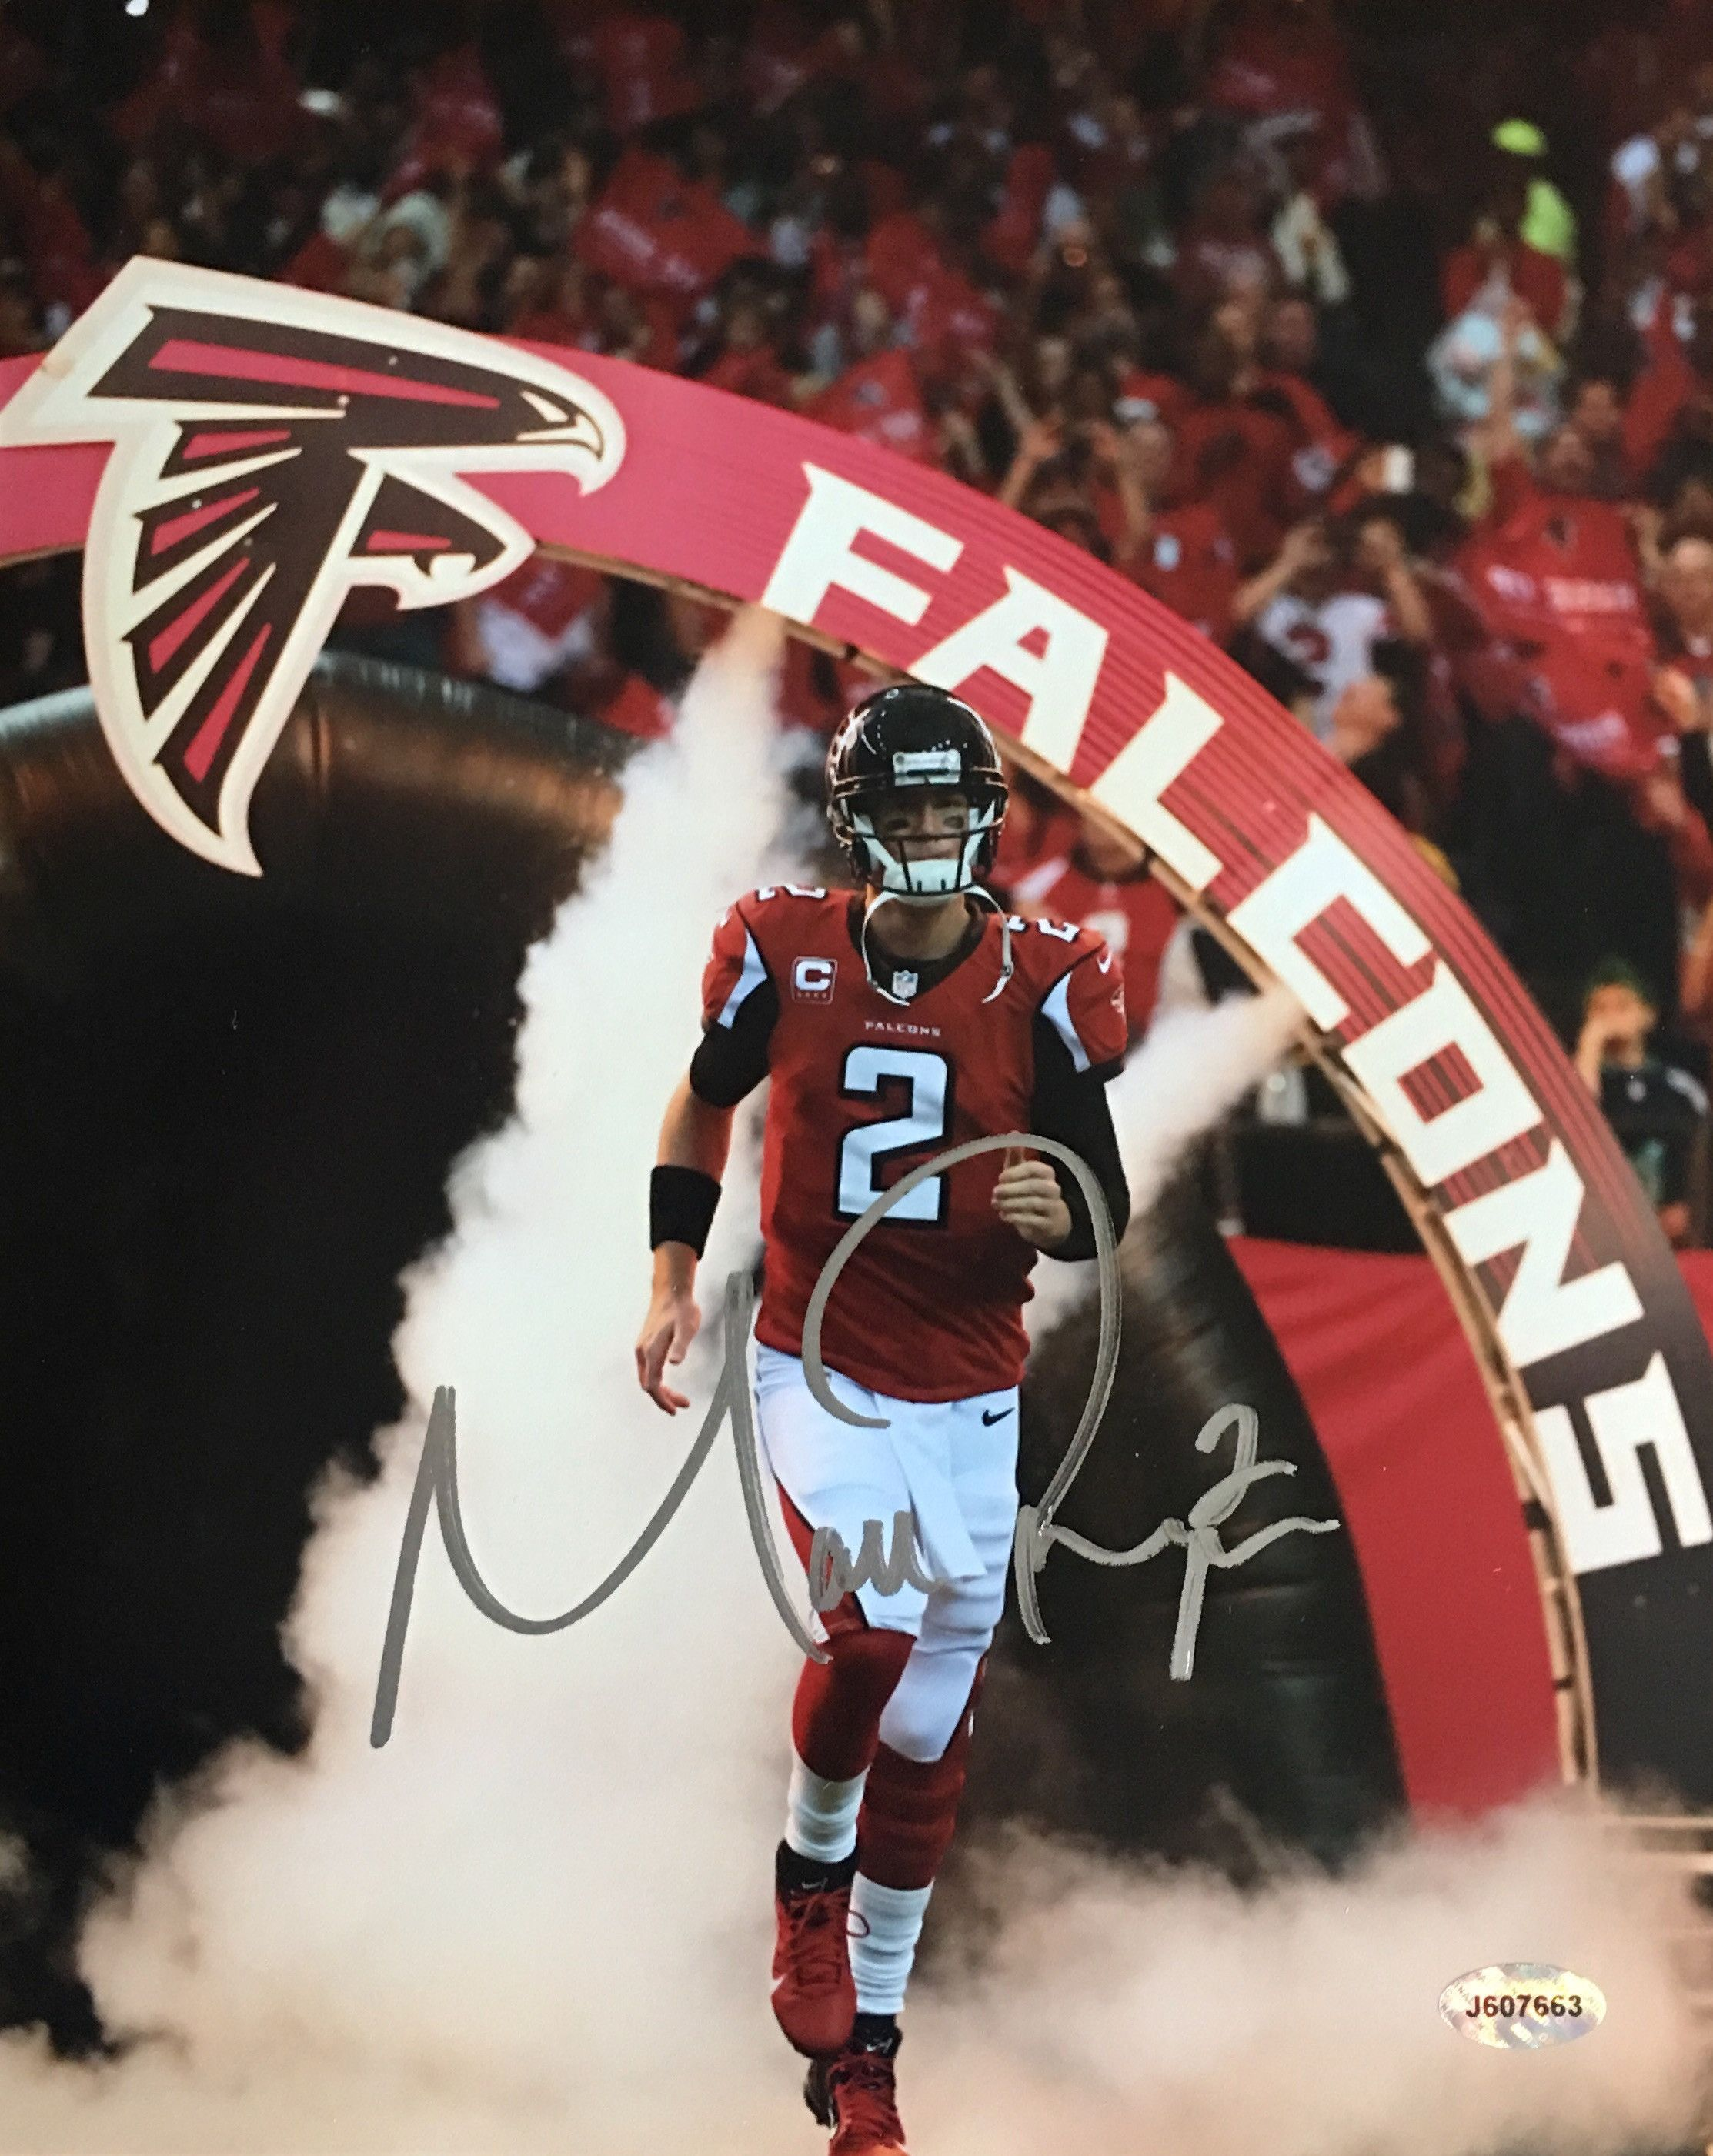 Matt Ryan Atlanta Falcons Signed 8x10 Photo Atlanta Falcons Football Atlanta Falcons Signs Atlanta Falcons